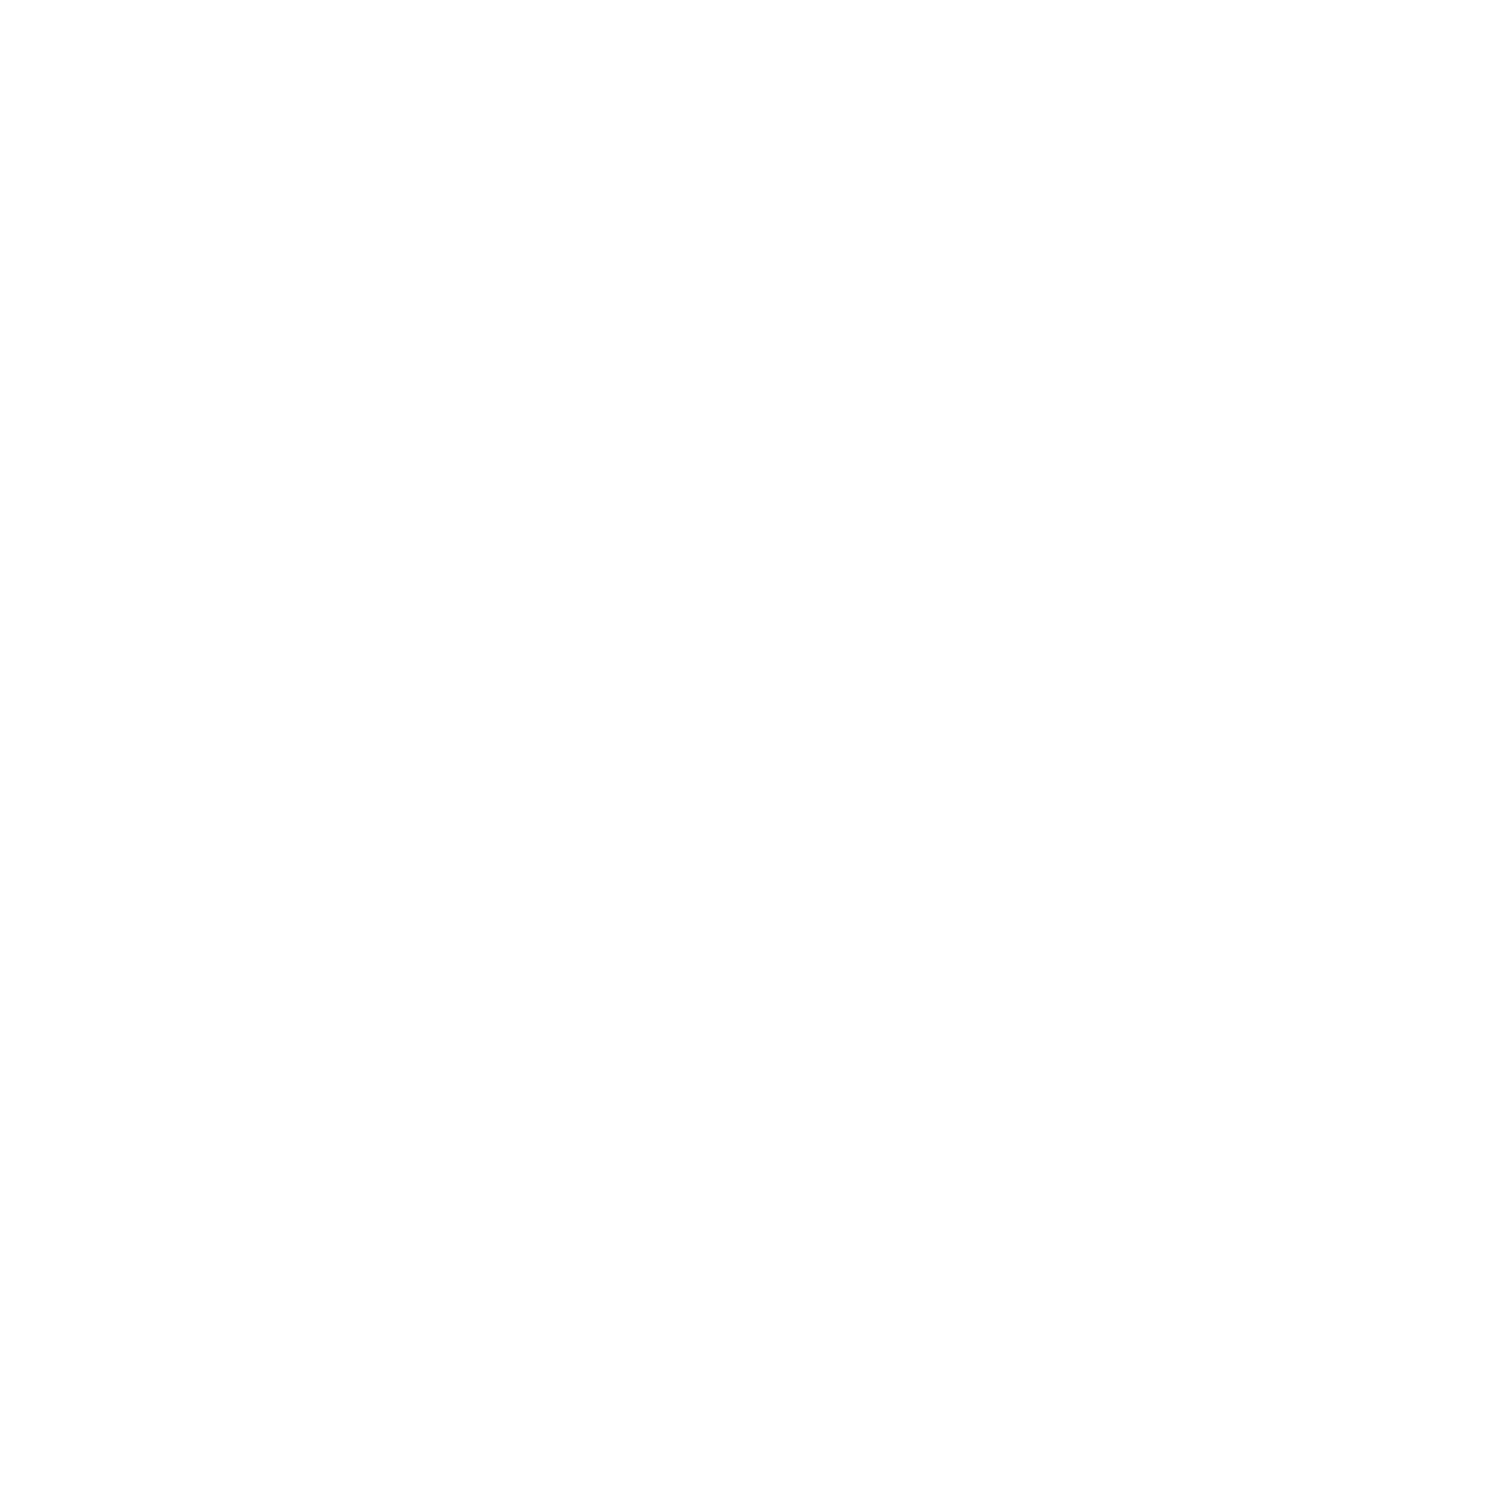 Cascade Park Baptist Church